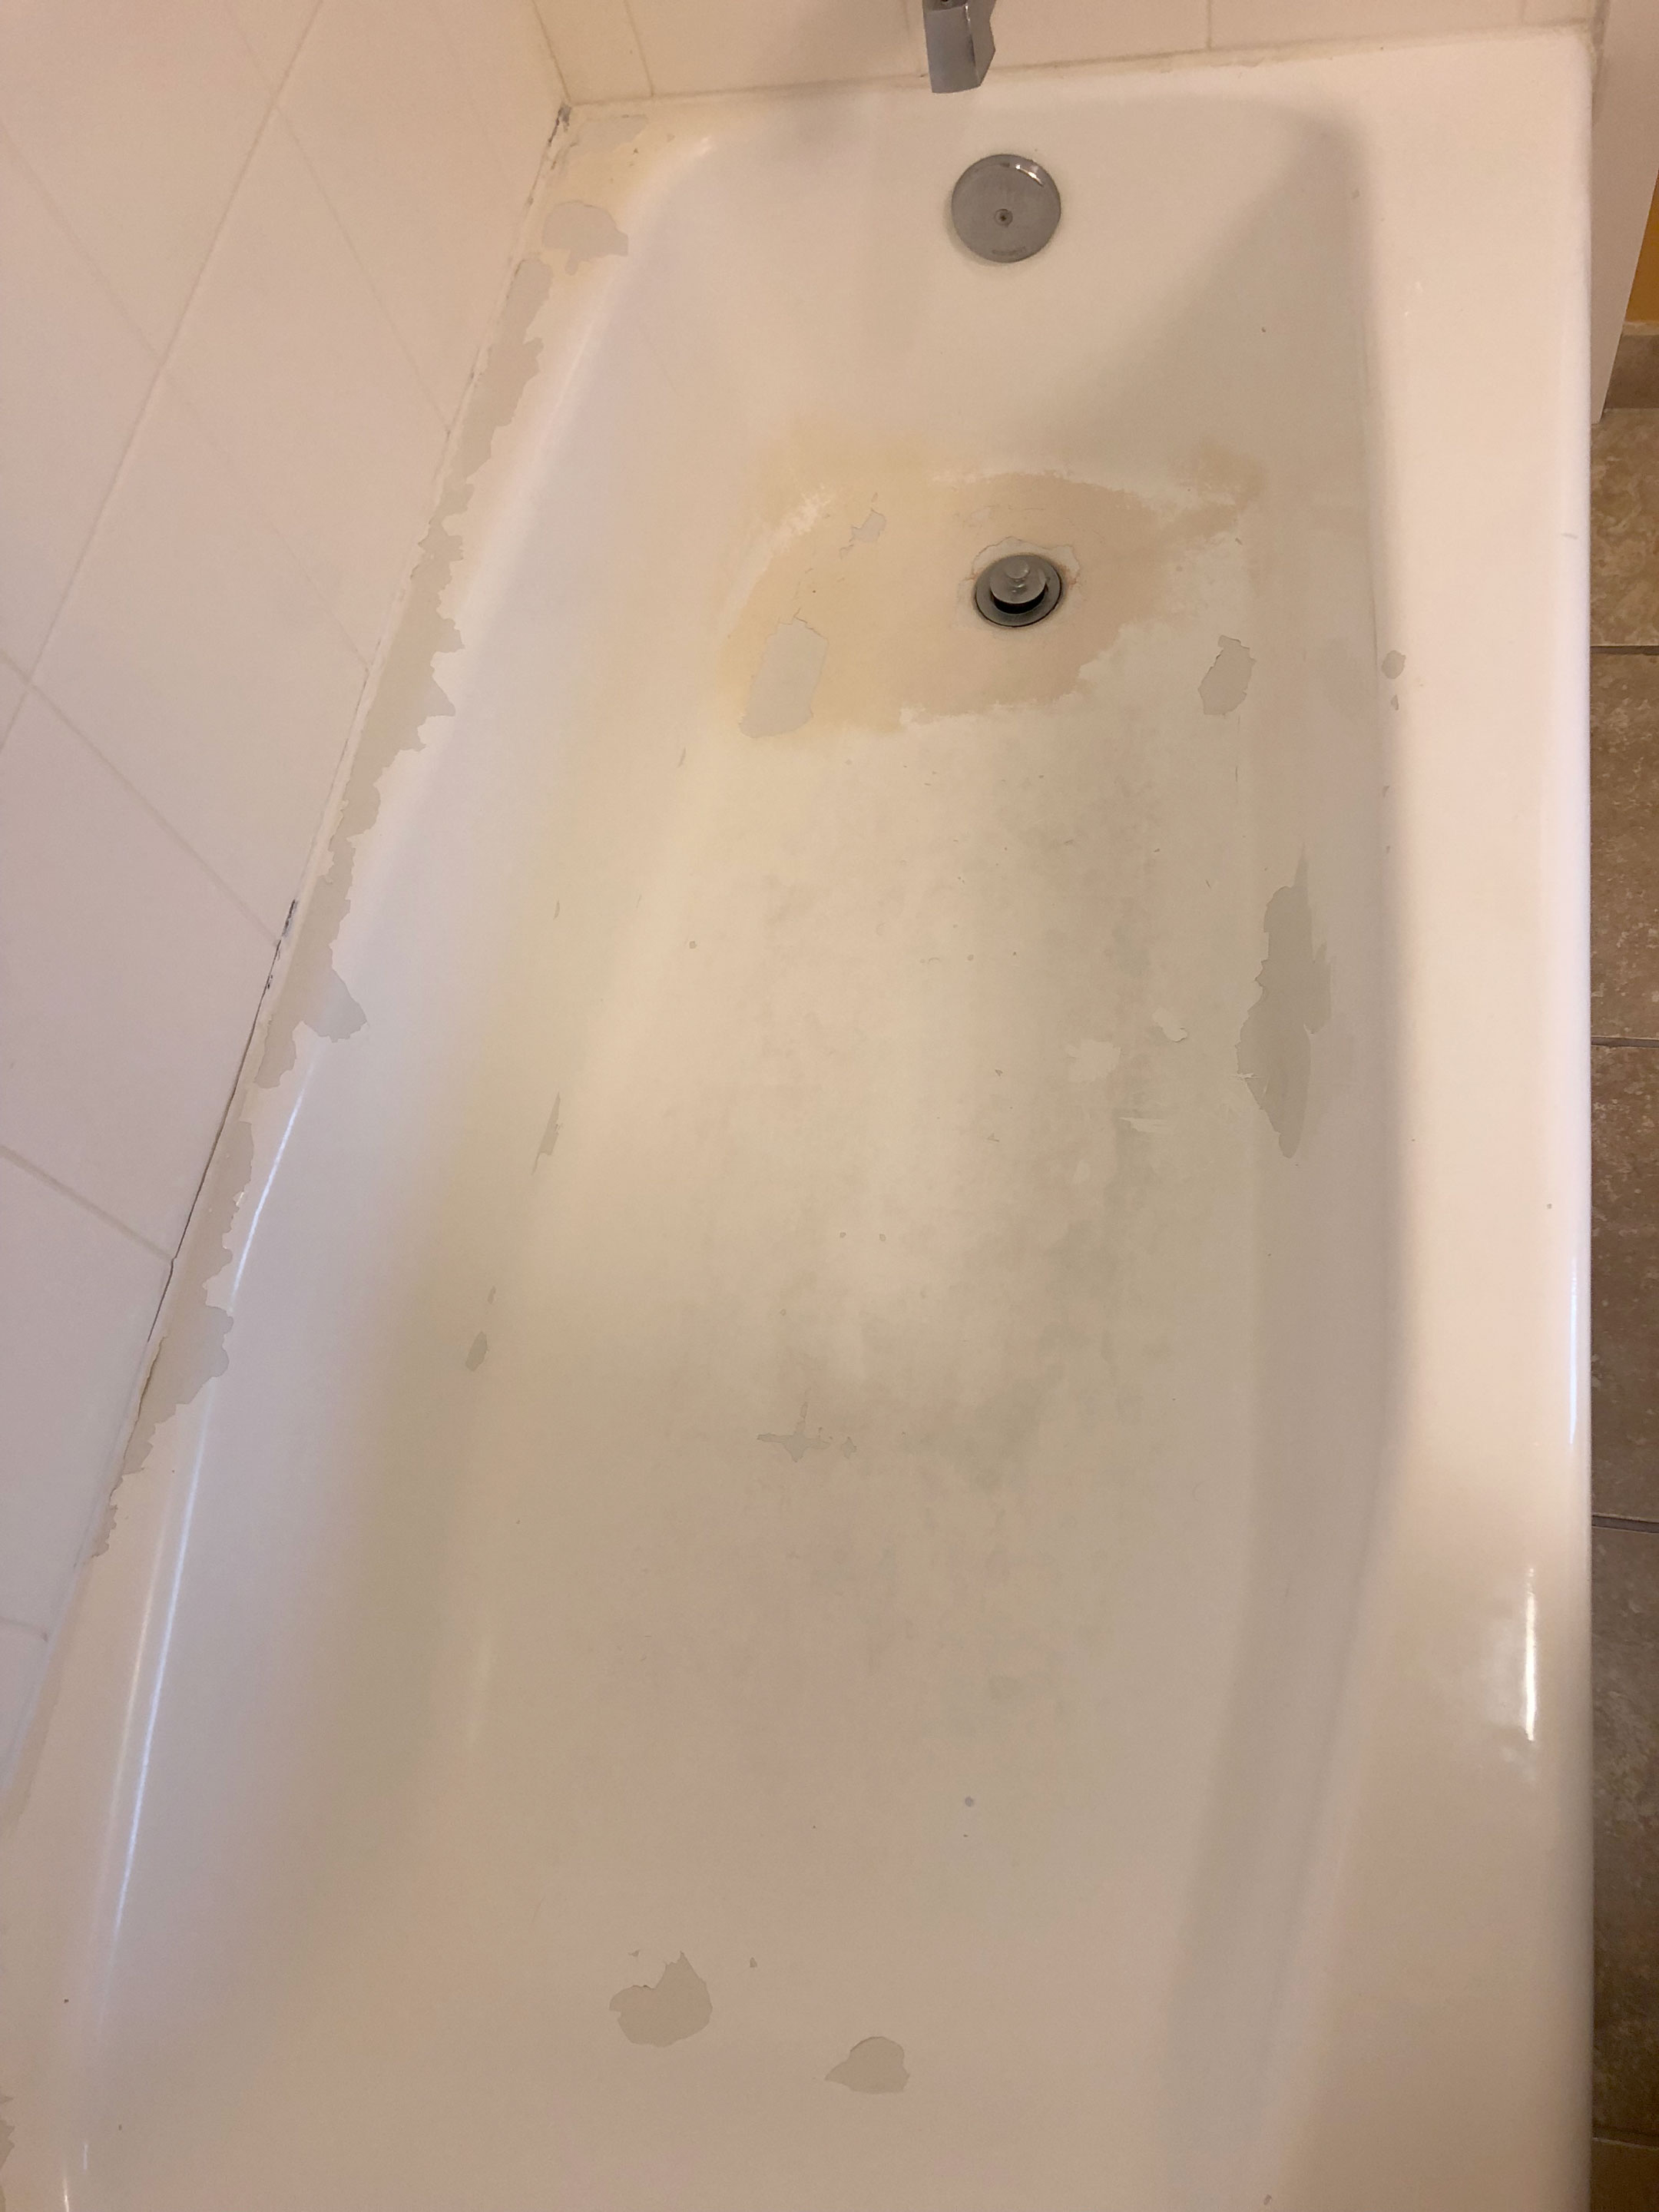 Chipped and peeling tub before